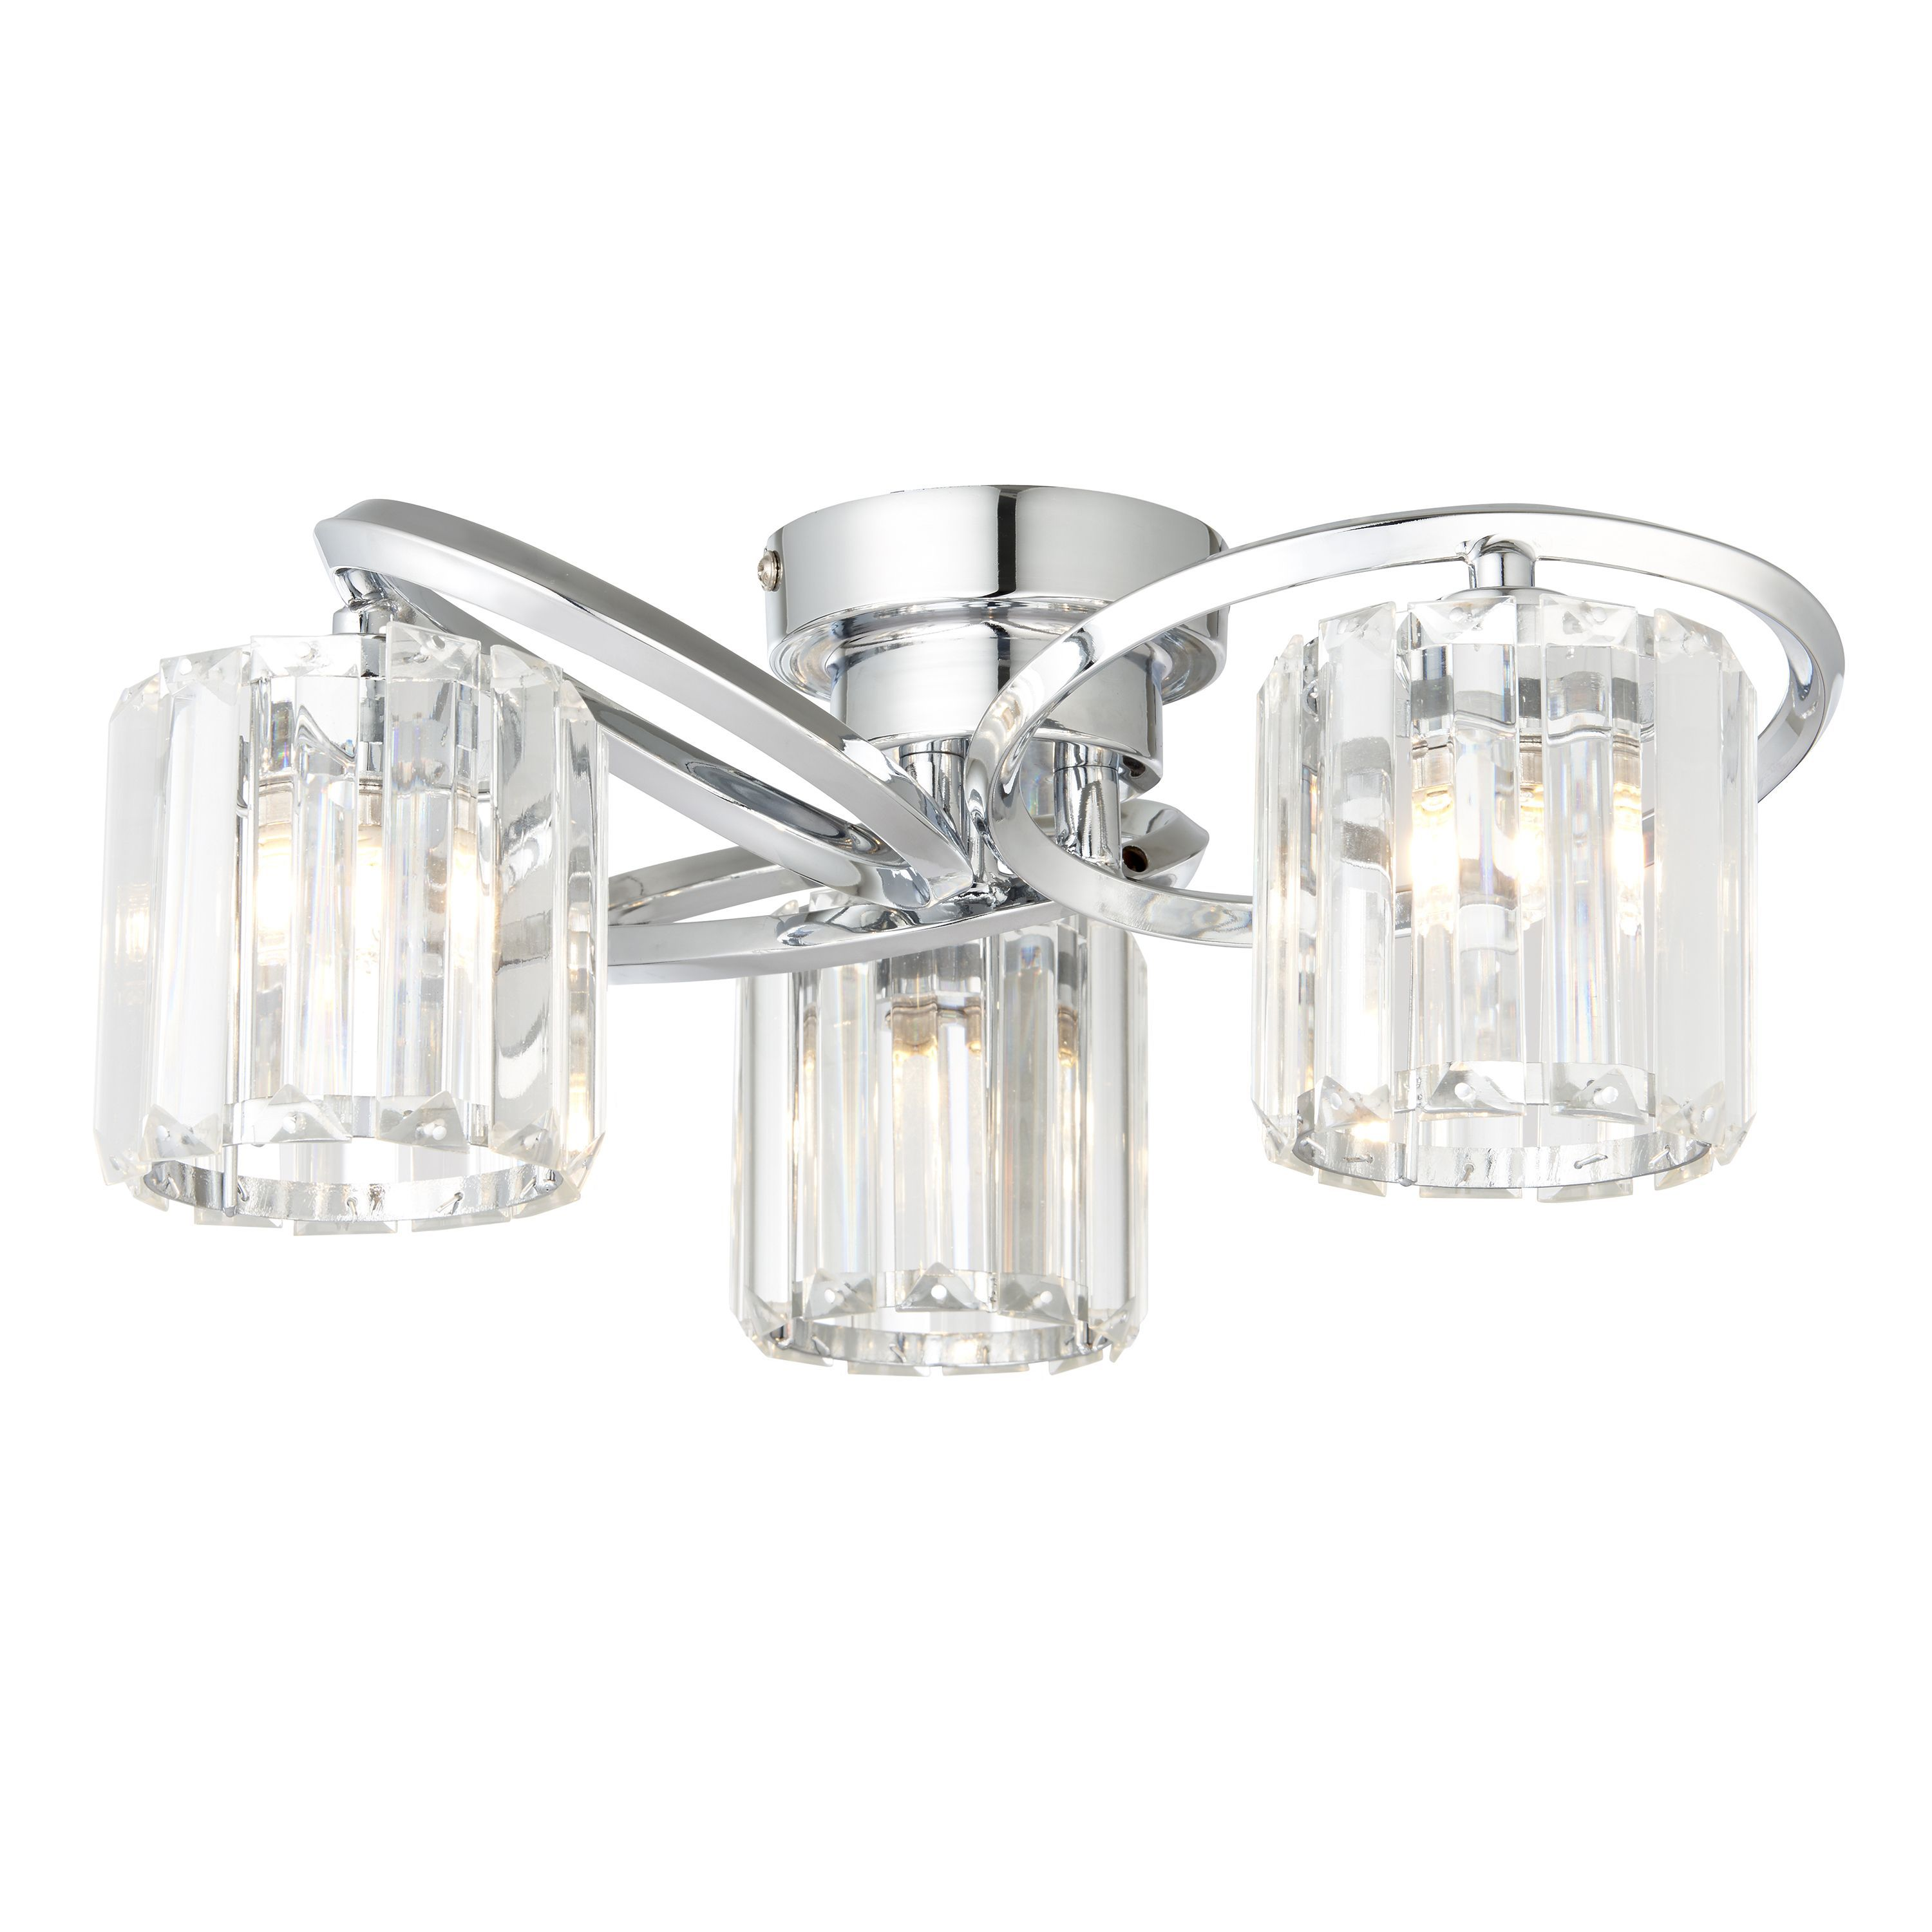 Picture of: Bromley Bevelled Glass Chrome Effect 3 Lamp Ceiling Light Departments Diy At B Q